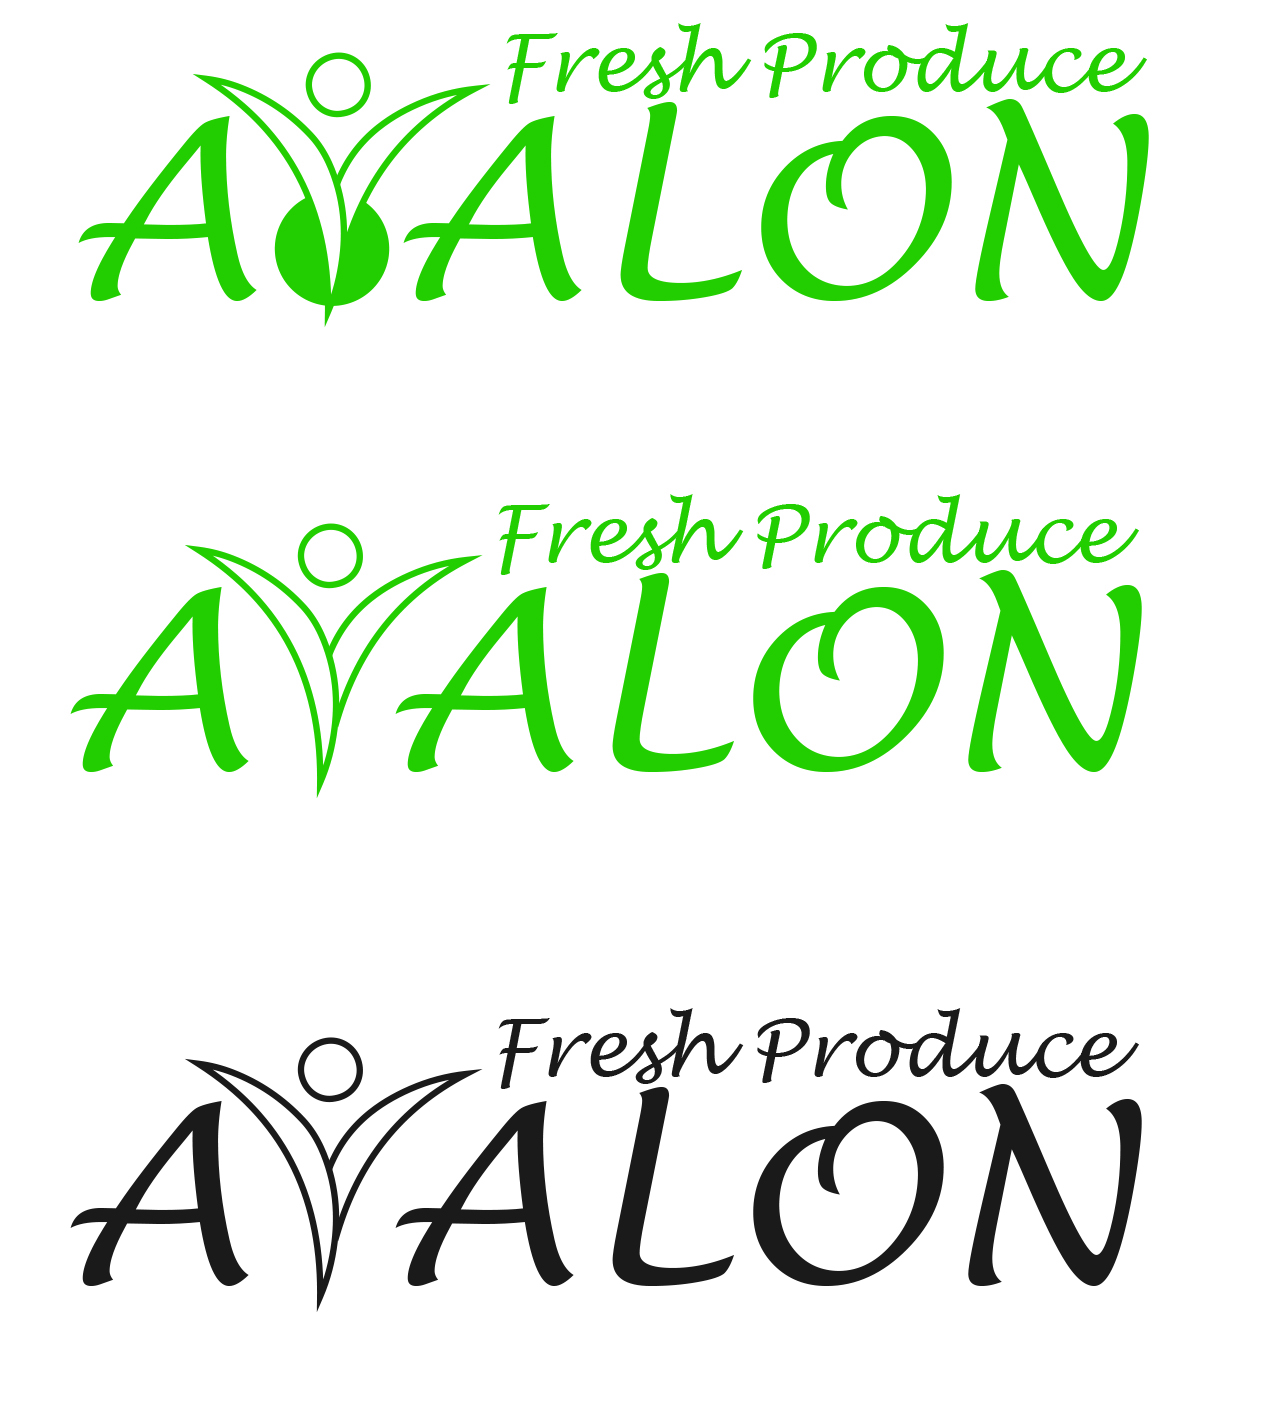 Logo Design by fako - Entry No. 28 in the Logo Design Contest Unique Logo Design Wanted for Avalon Fresh Produce.